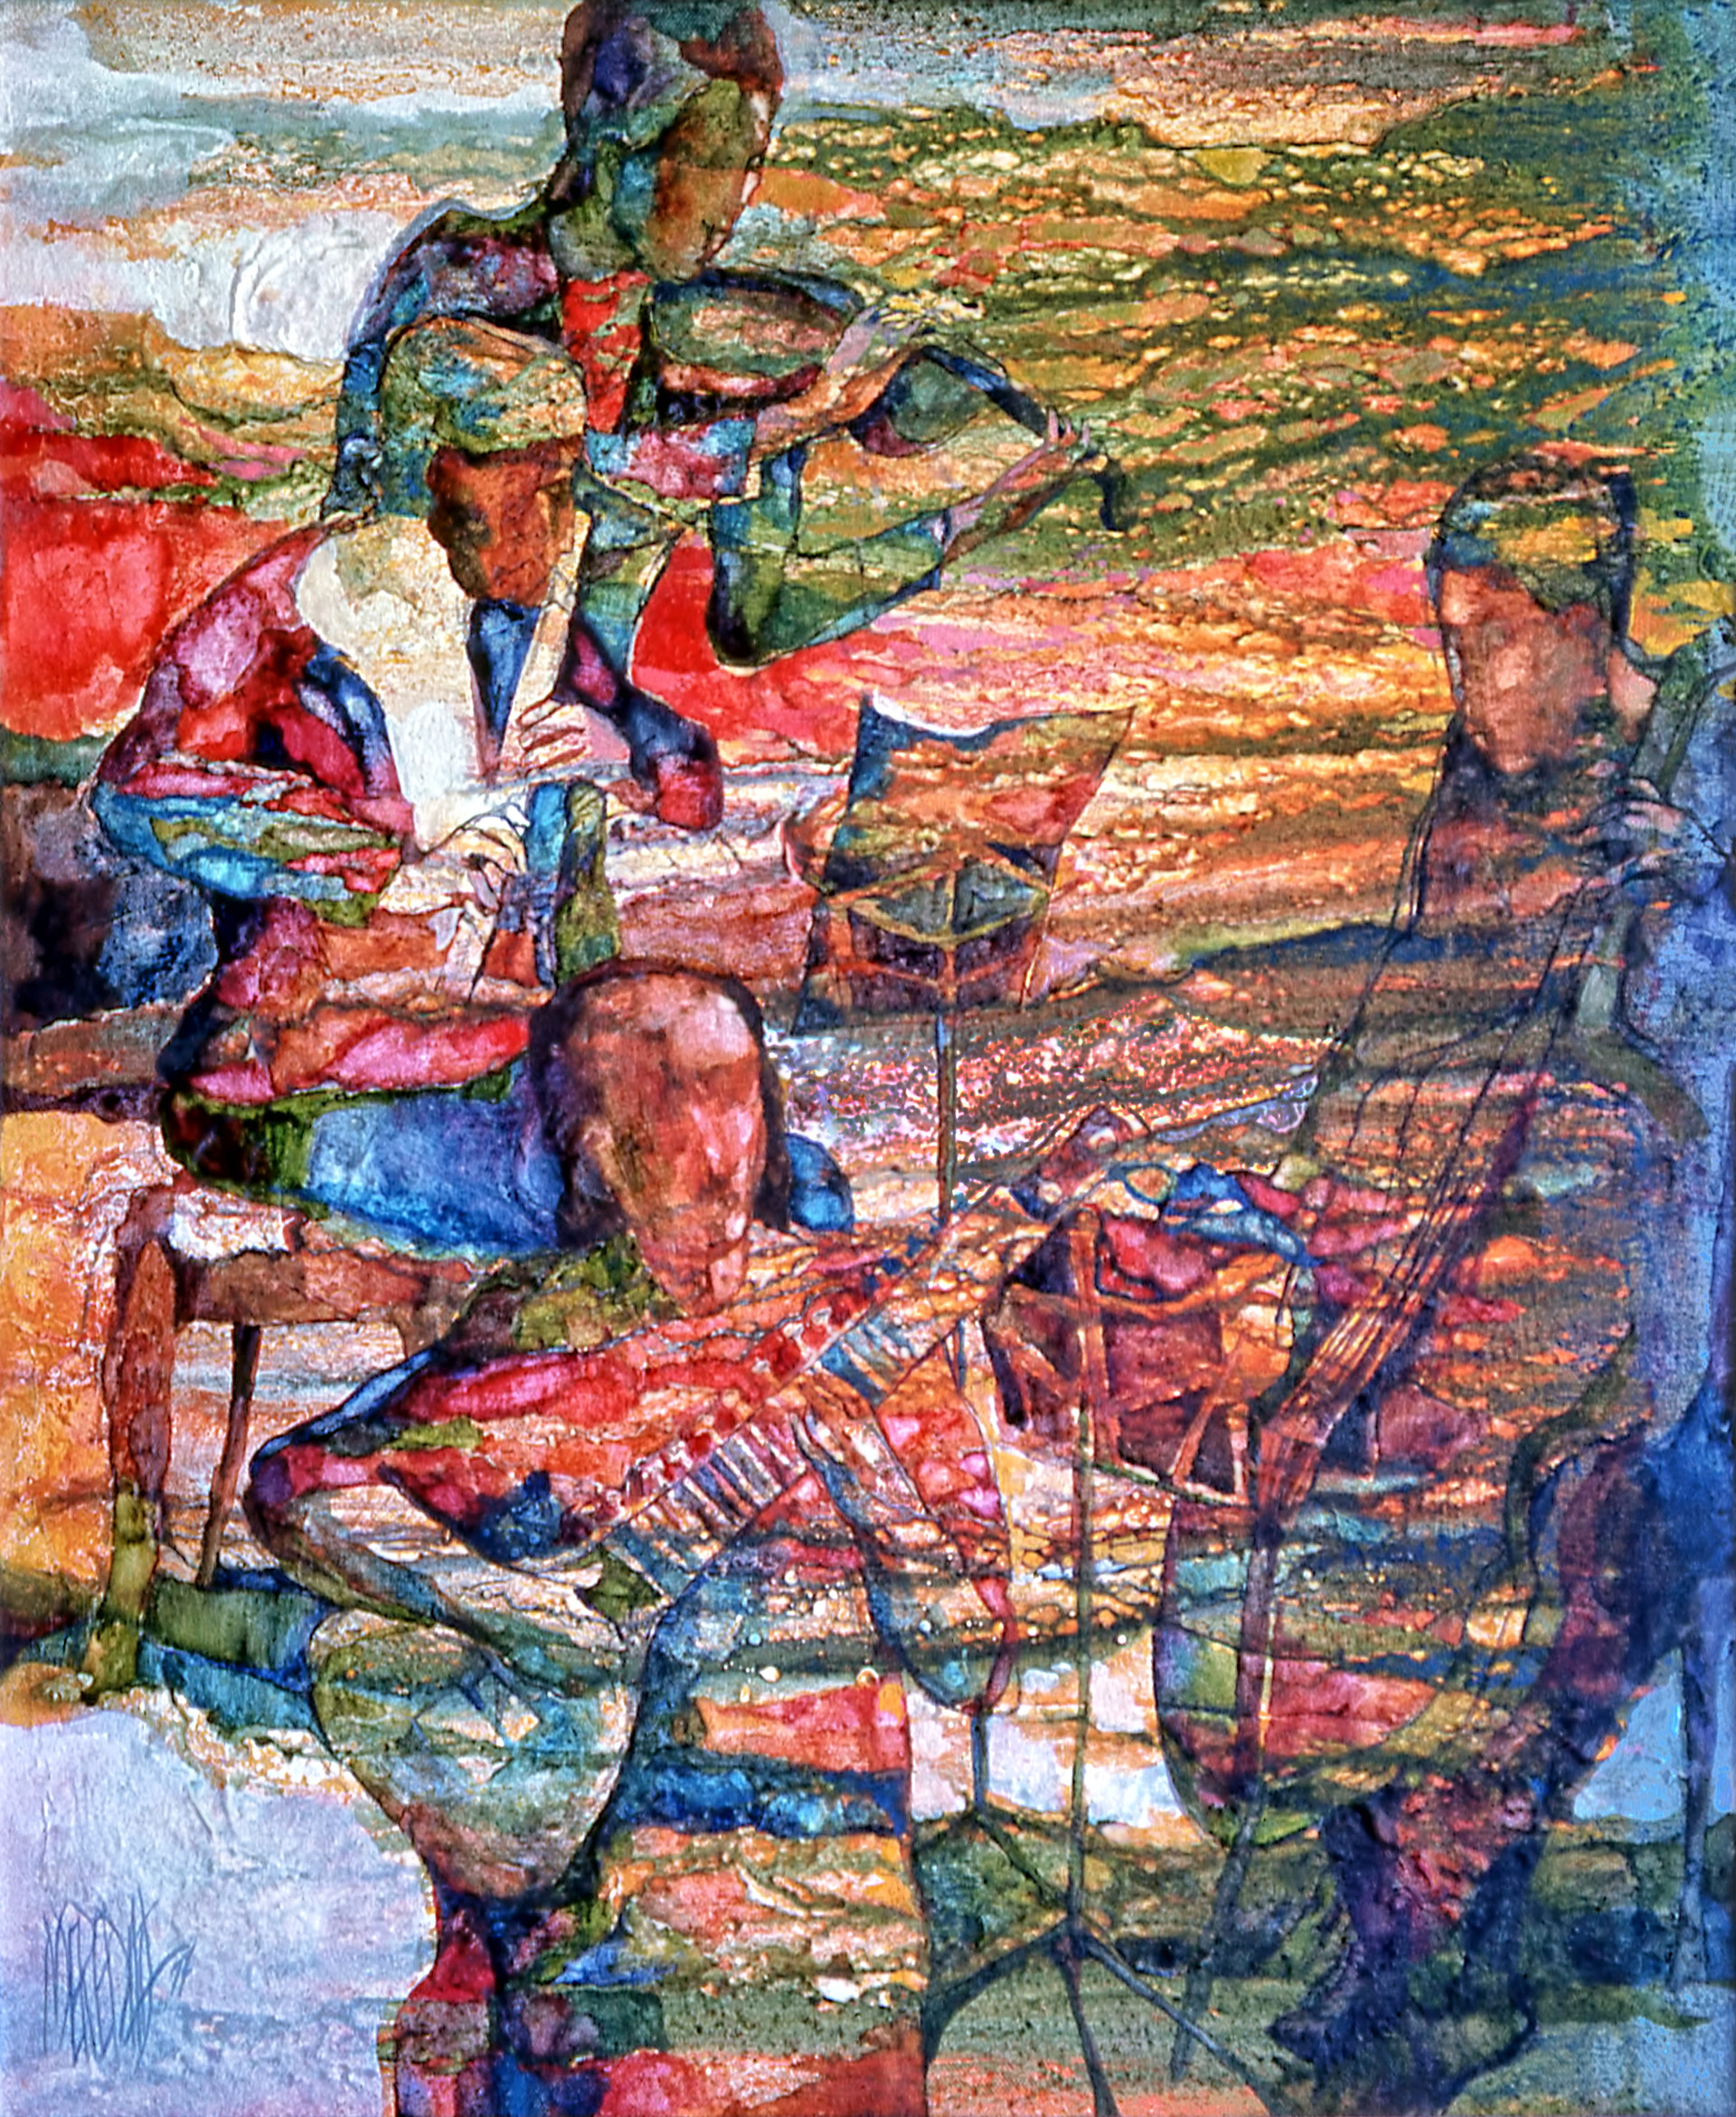 1976 - MUSICAL TAPESTRY - Oil on Canvas - 20X30